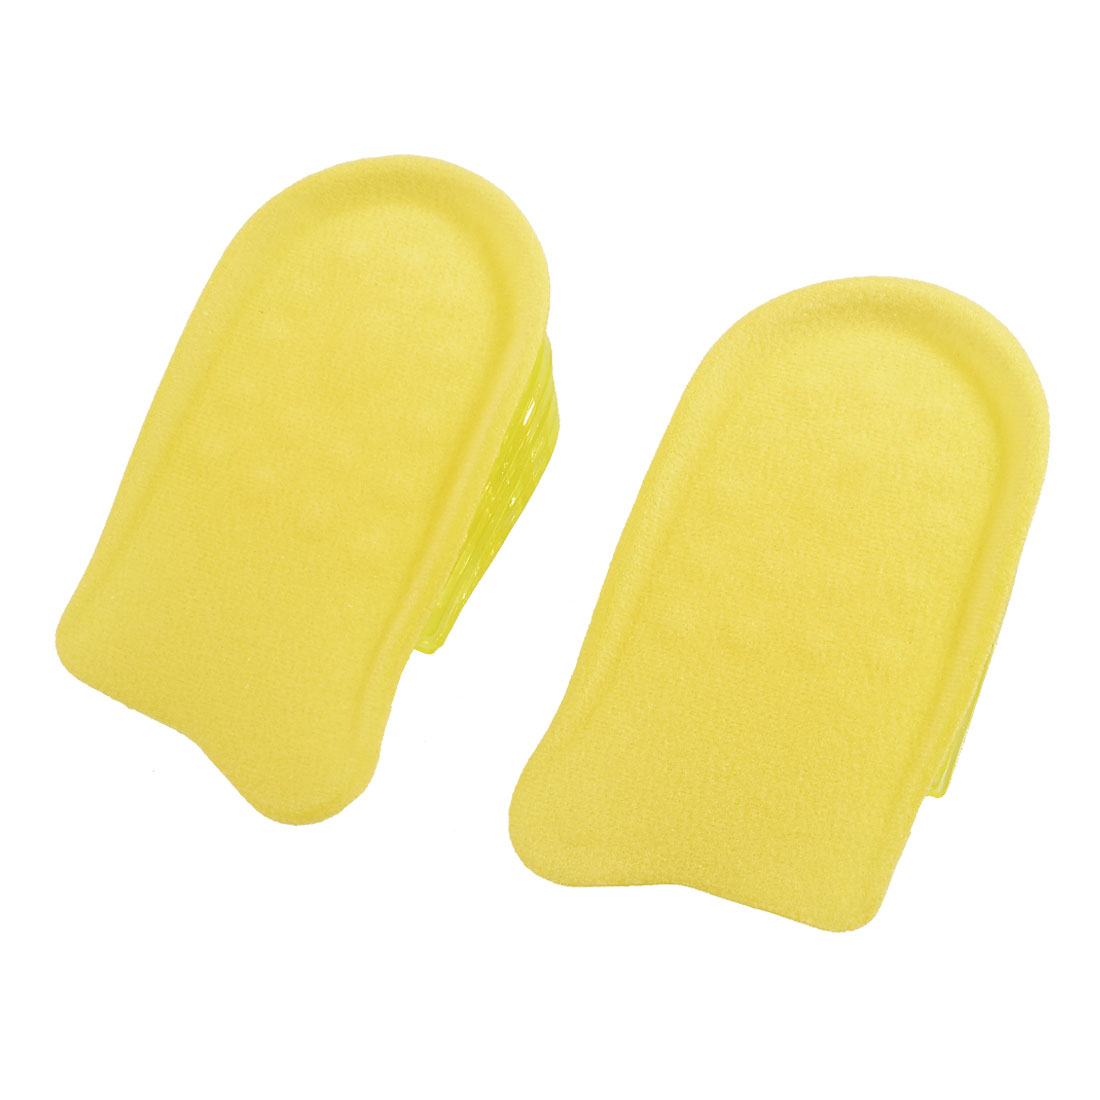 "Pair Removable 5-Layer 1.4"" Up Heel Lift Pad Height Insoles Yellow"